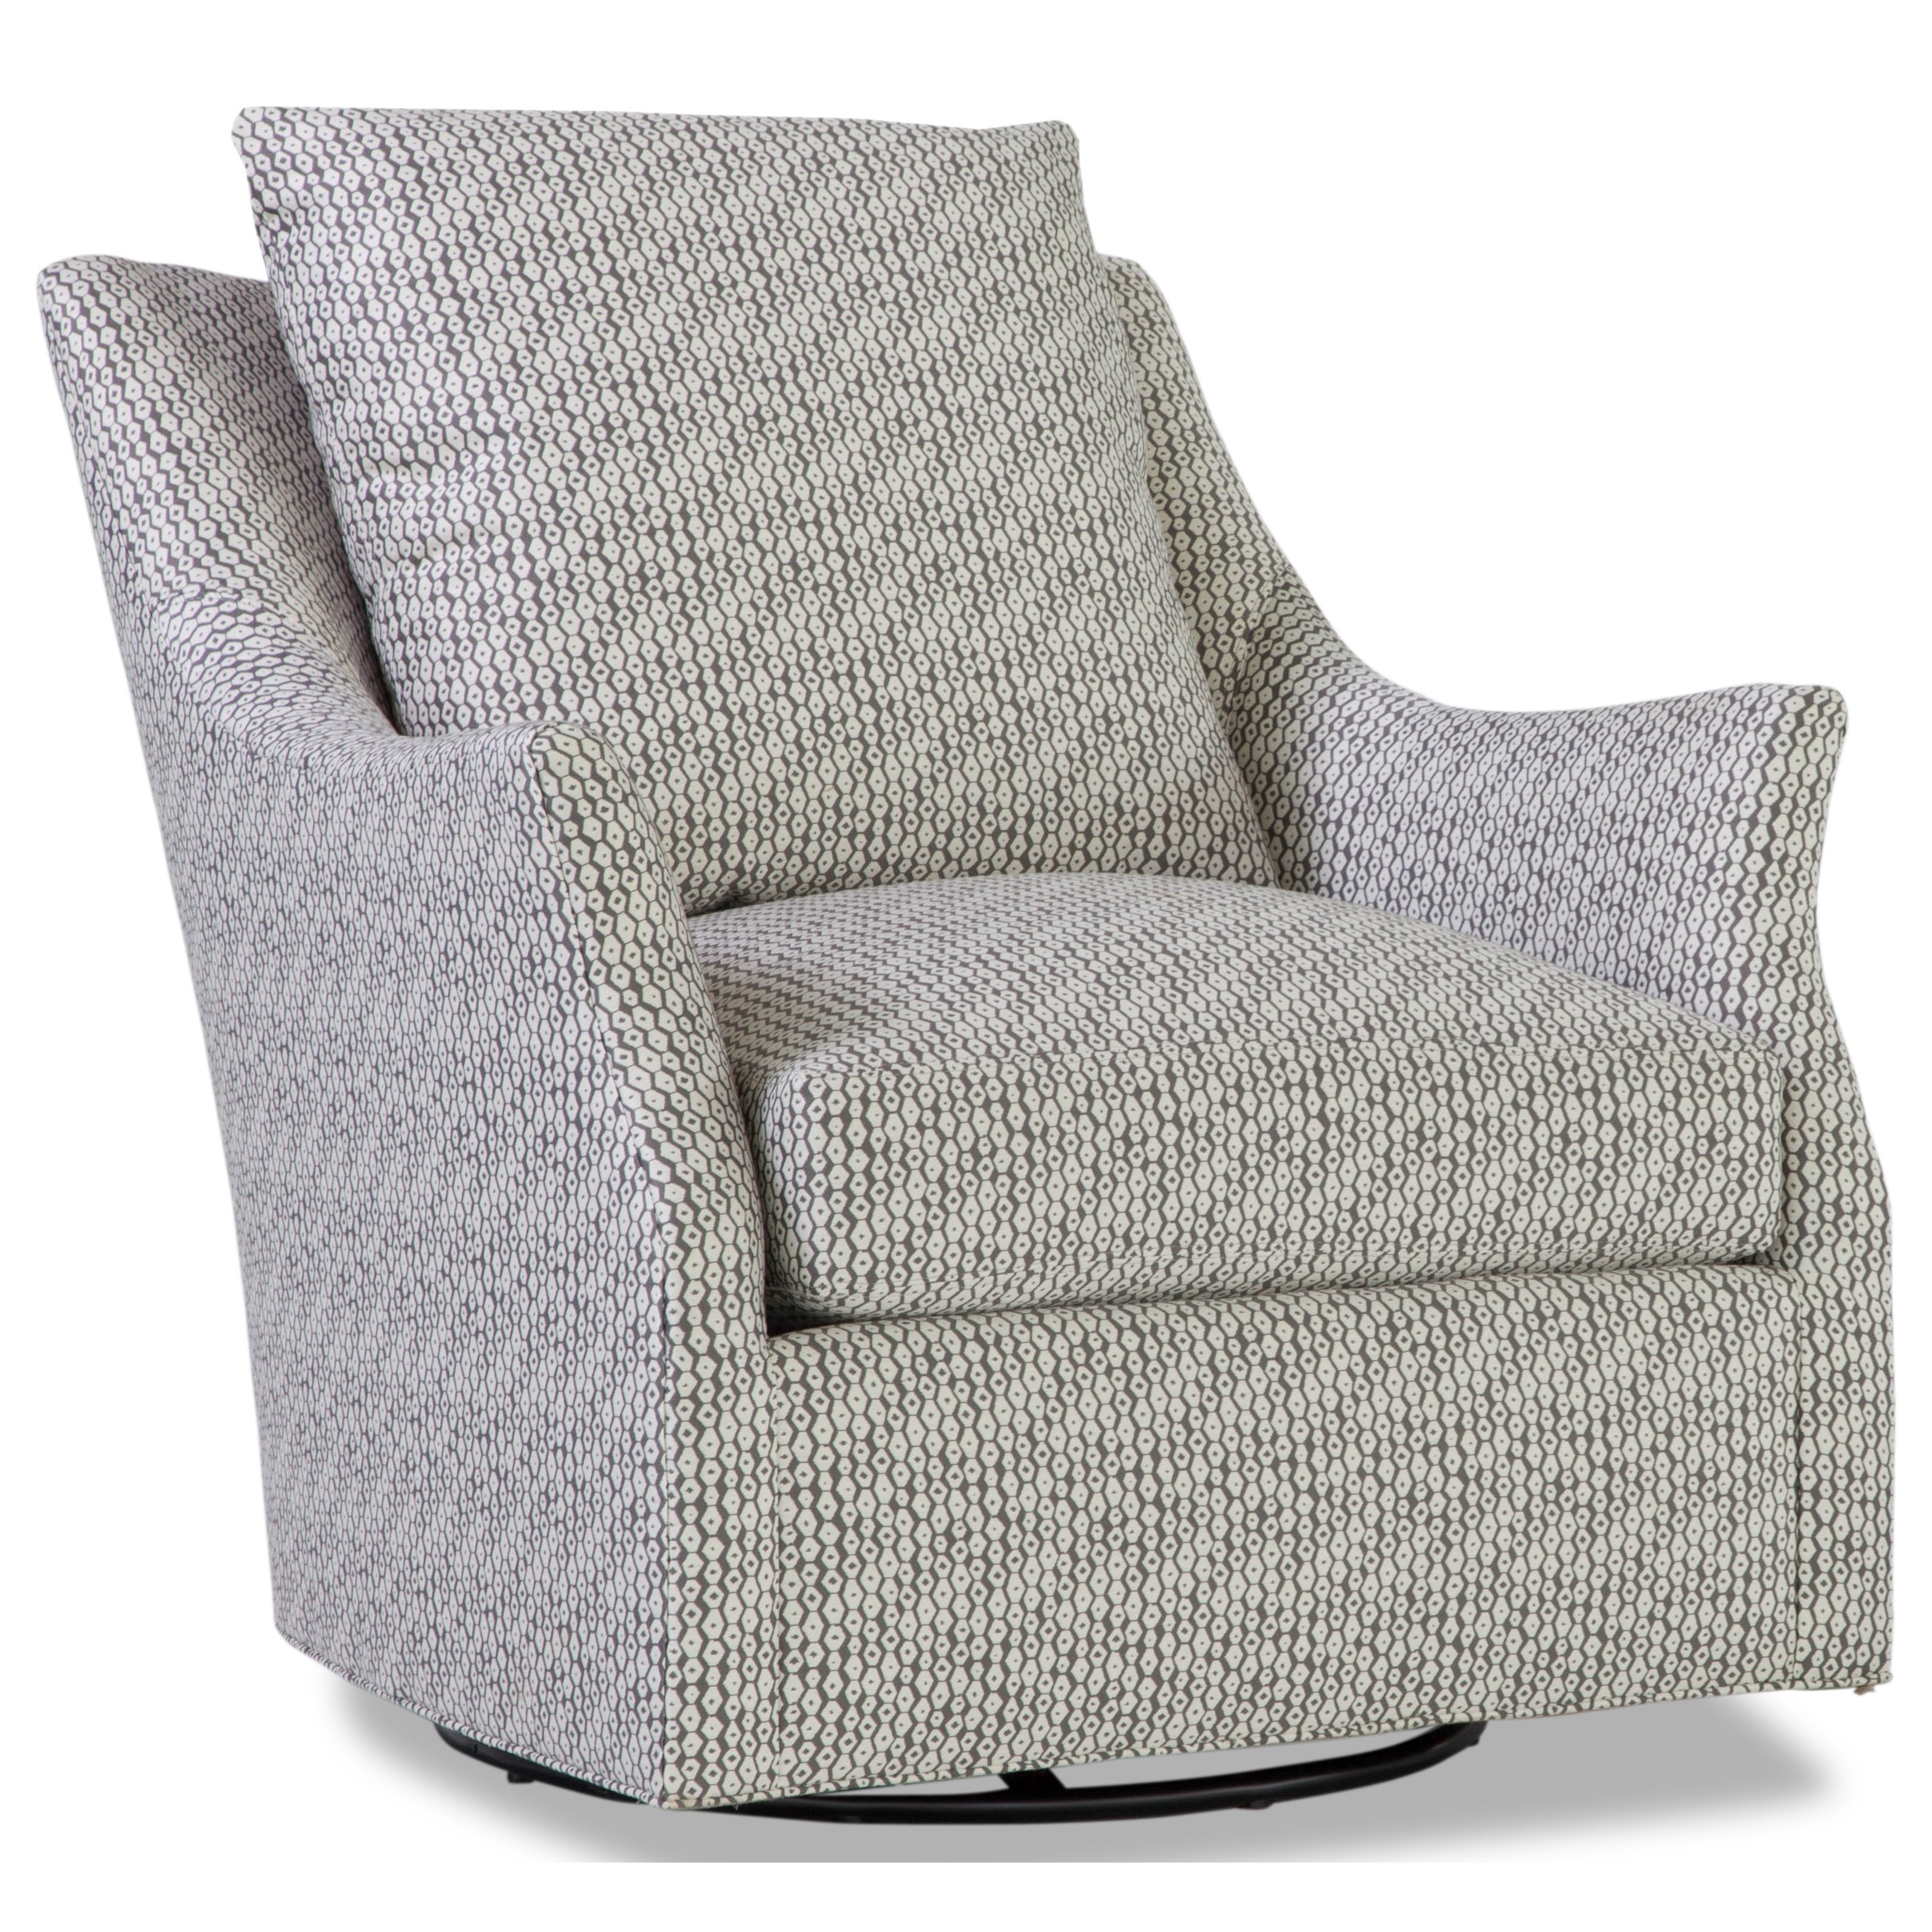 Huntington House 7270 Contemporary Swivel Glider Chair